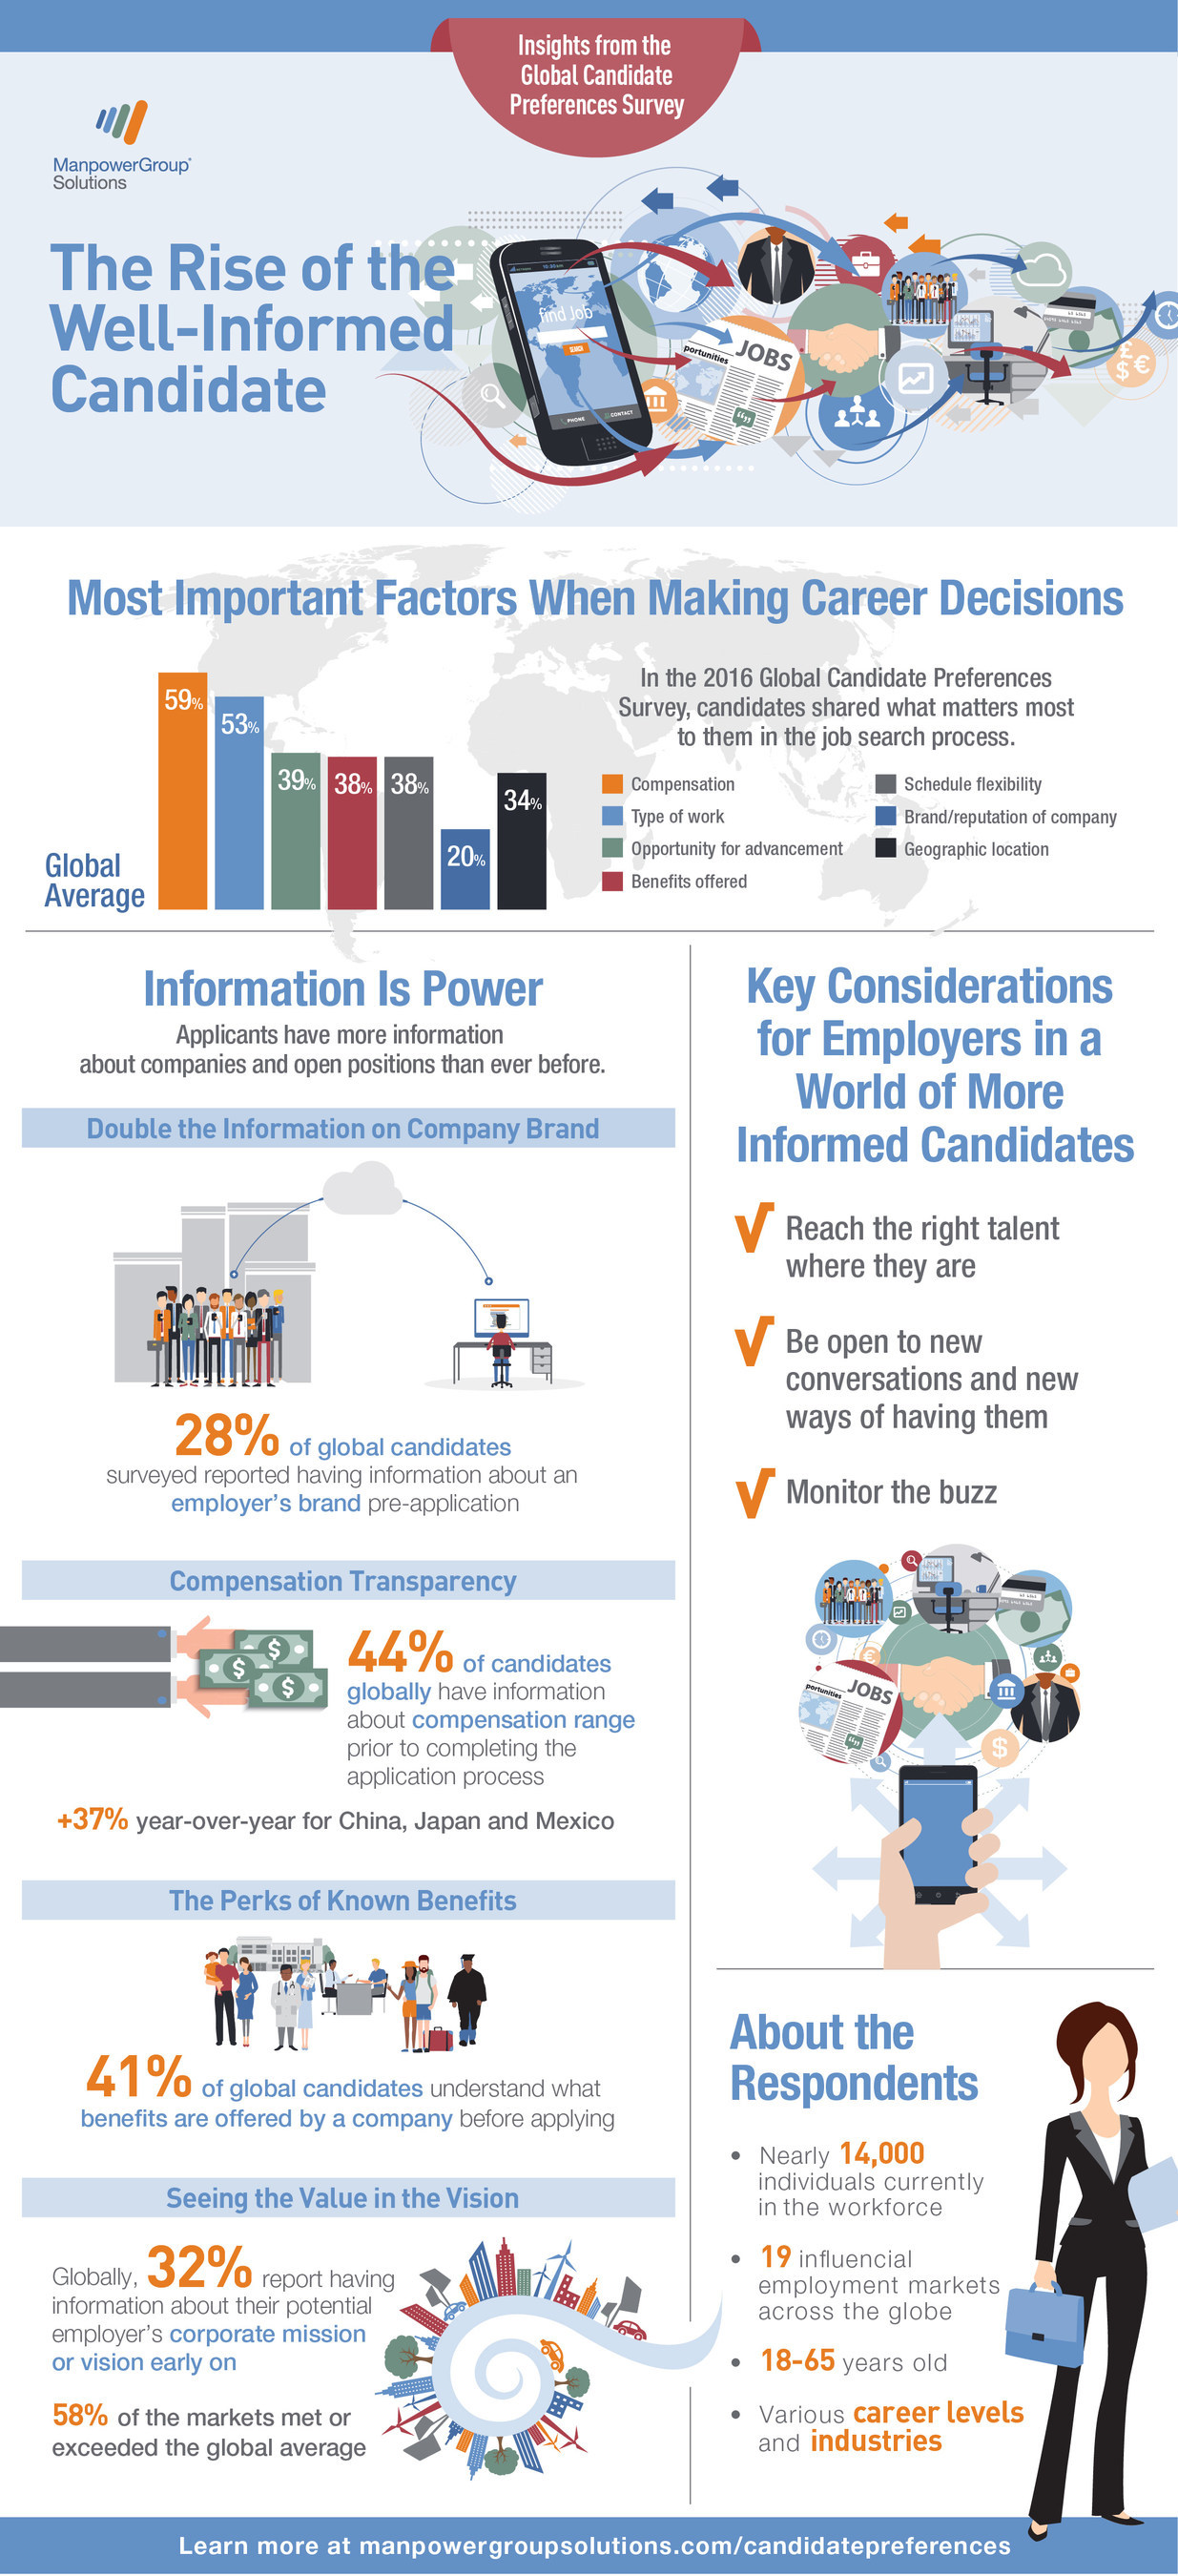 Today's job seekers have more information than ever about a company and a position at early stages of the job search process, according to new research from ManpowerGroup Solutions, the world's largest RPO provider.